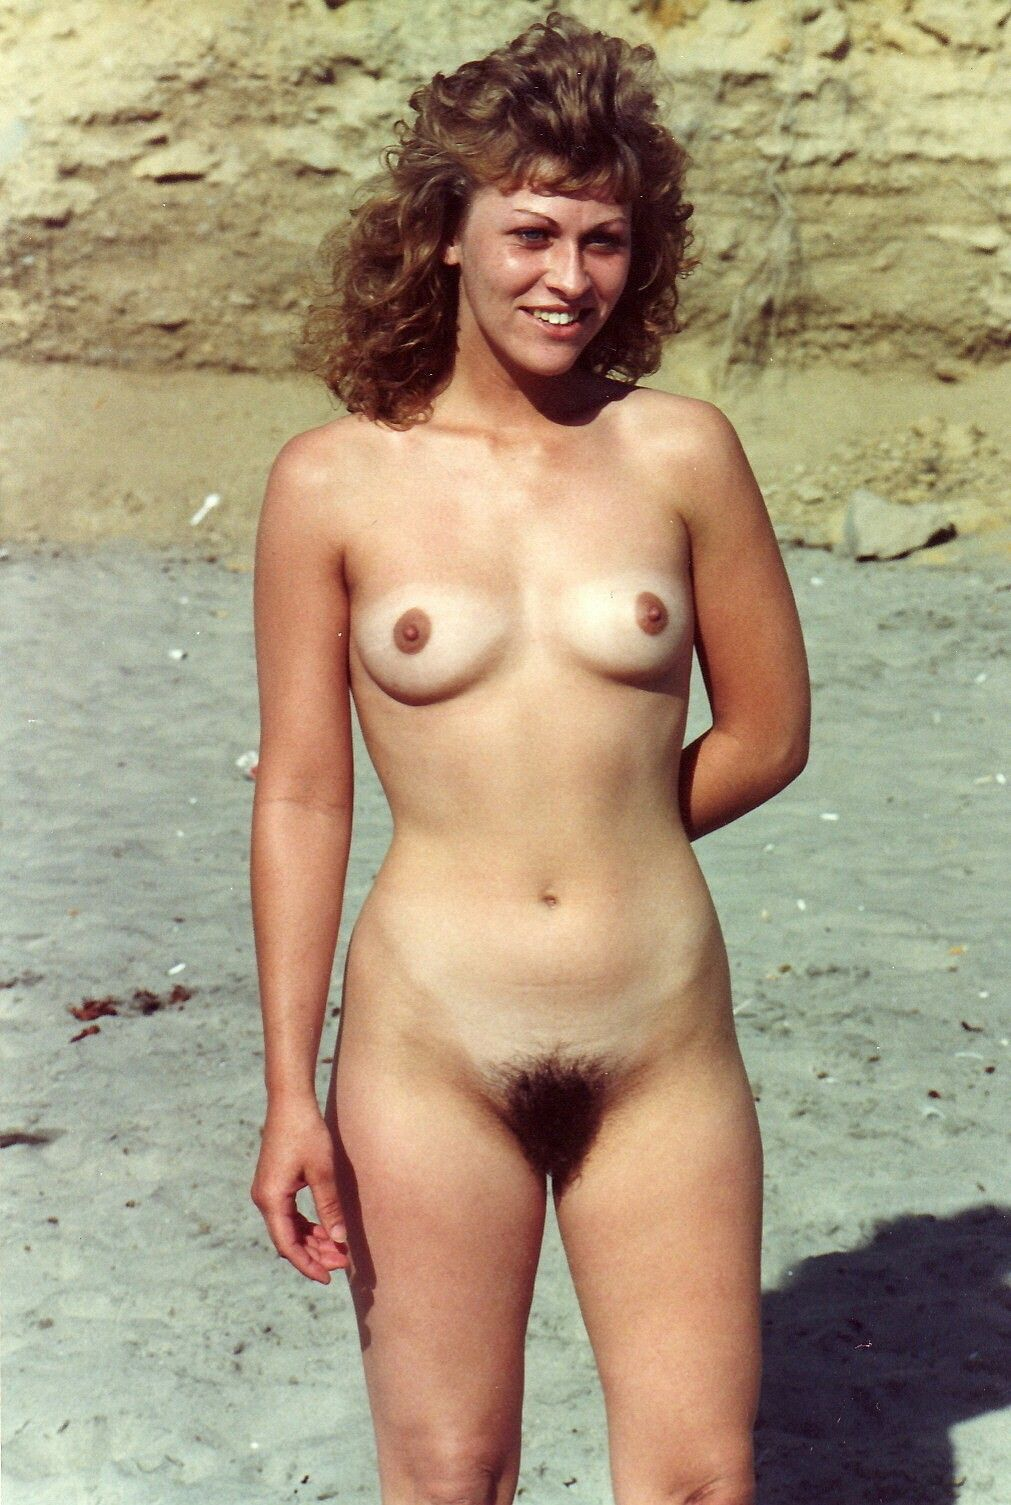 Girl vintage nudists — photo 3